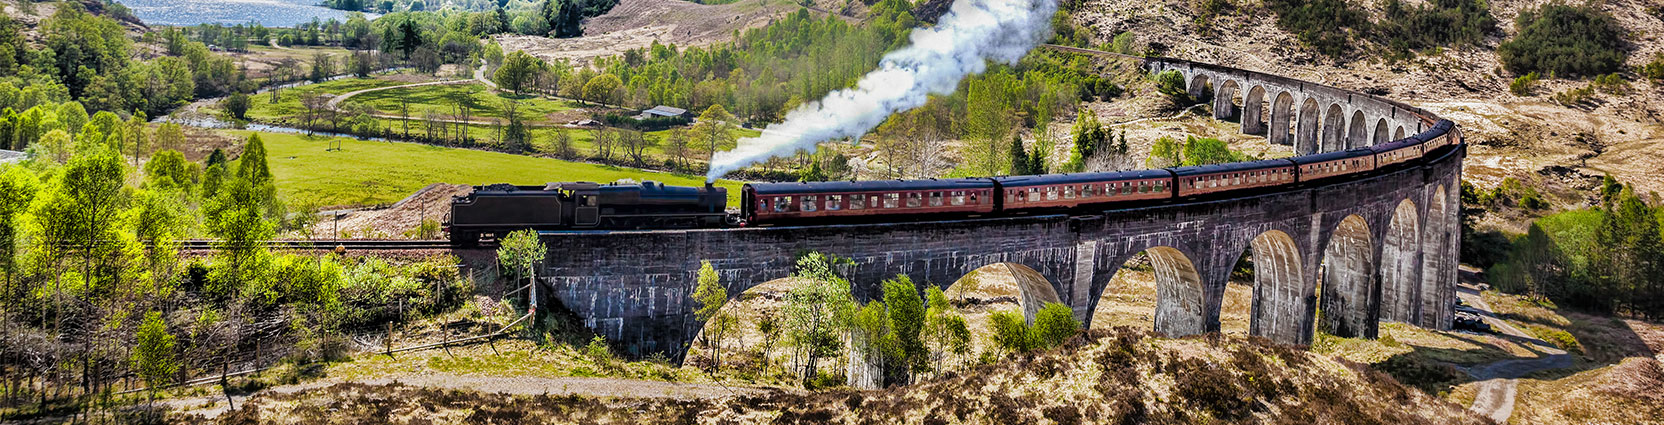 A train on Scotland's Glenfinnan Viaduct.